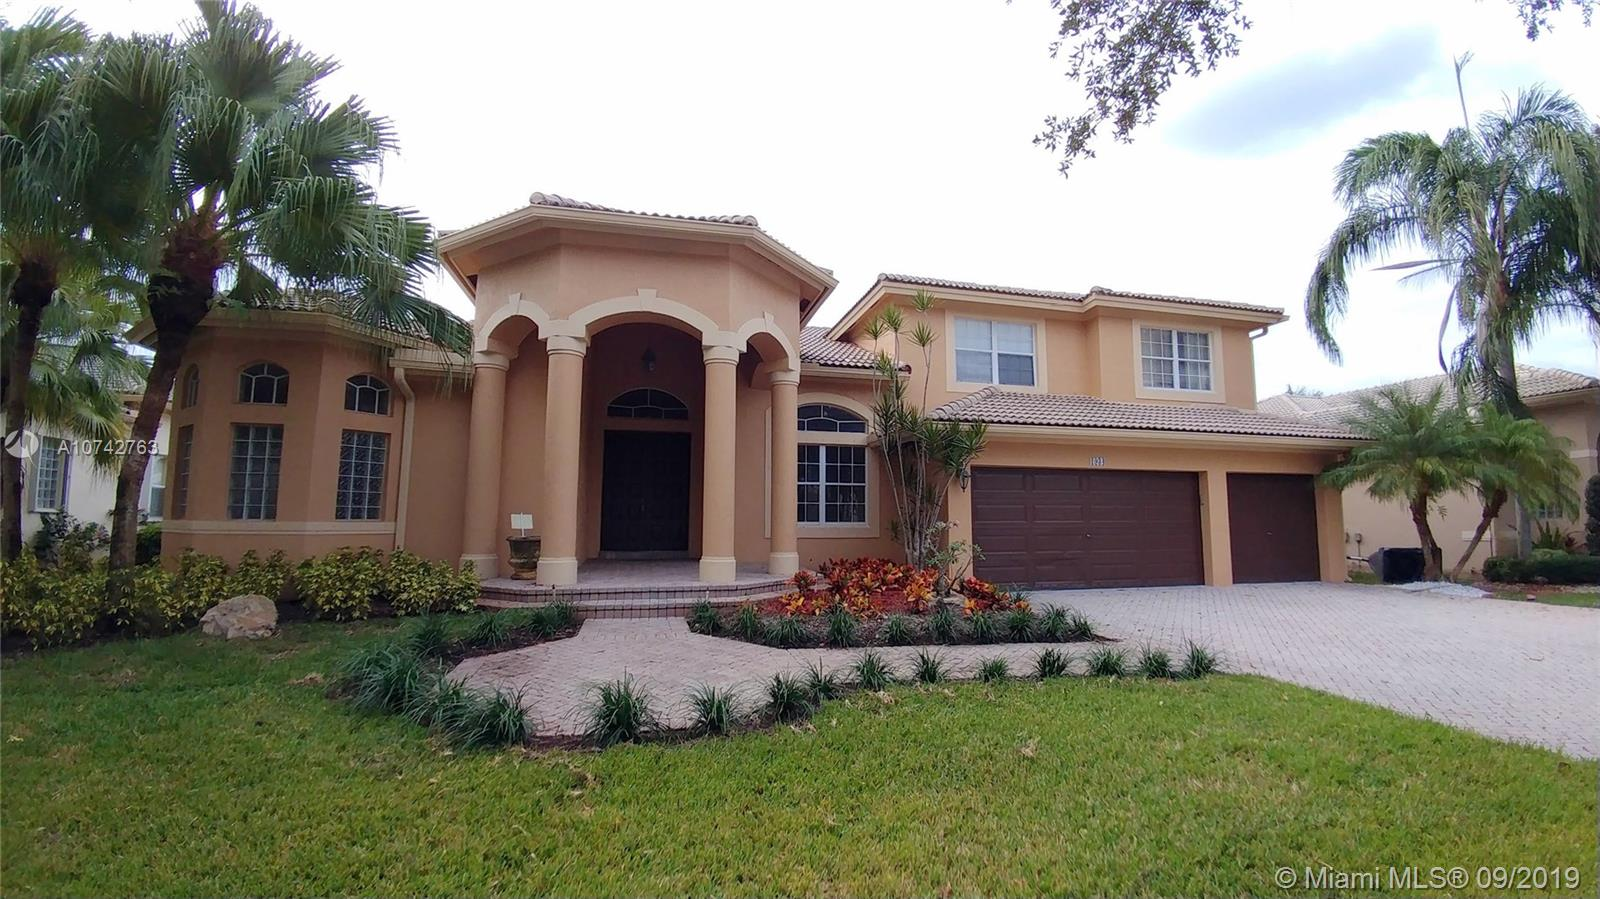 Property for sale at 1934 168th Ave, Pembroke Pines,  Florida 33028